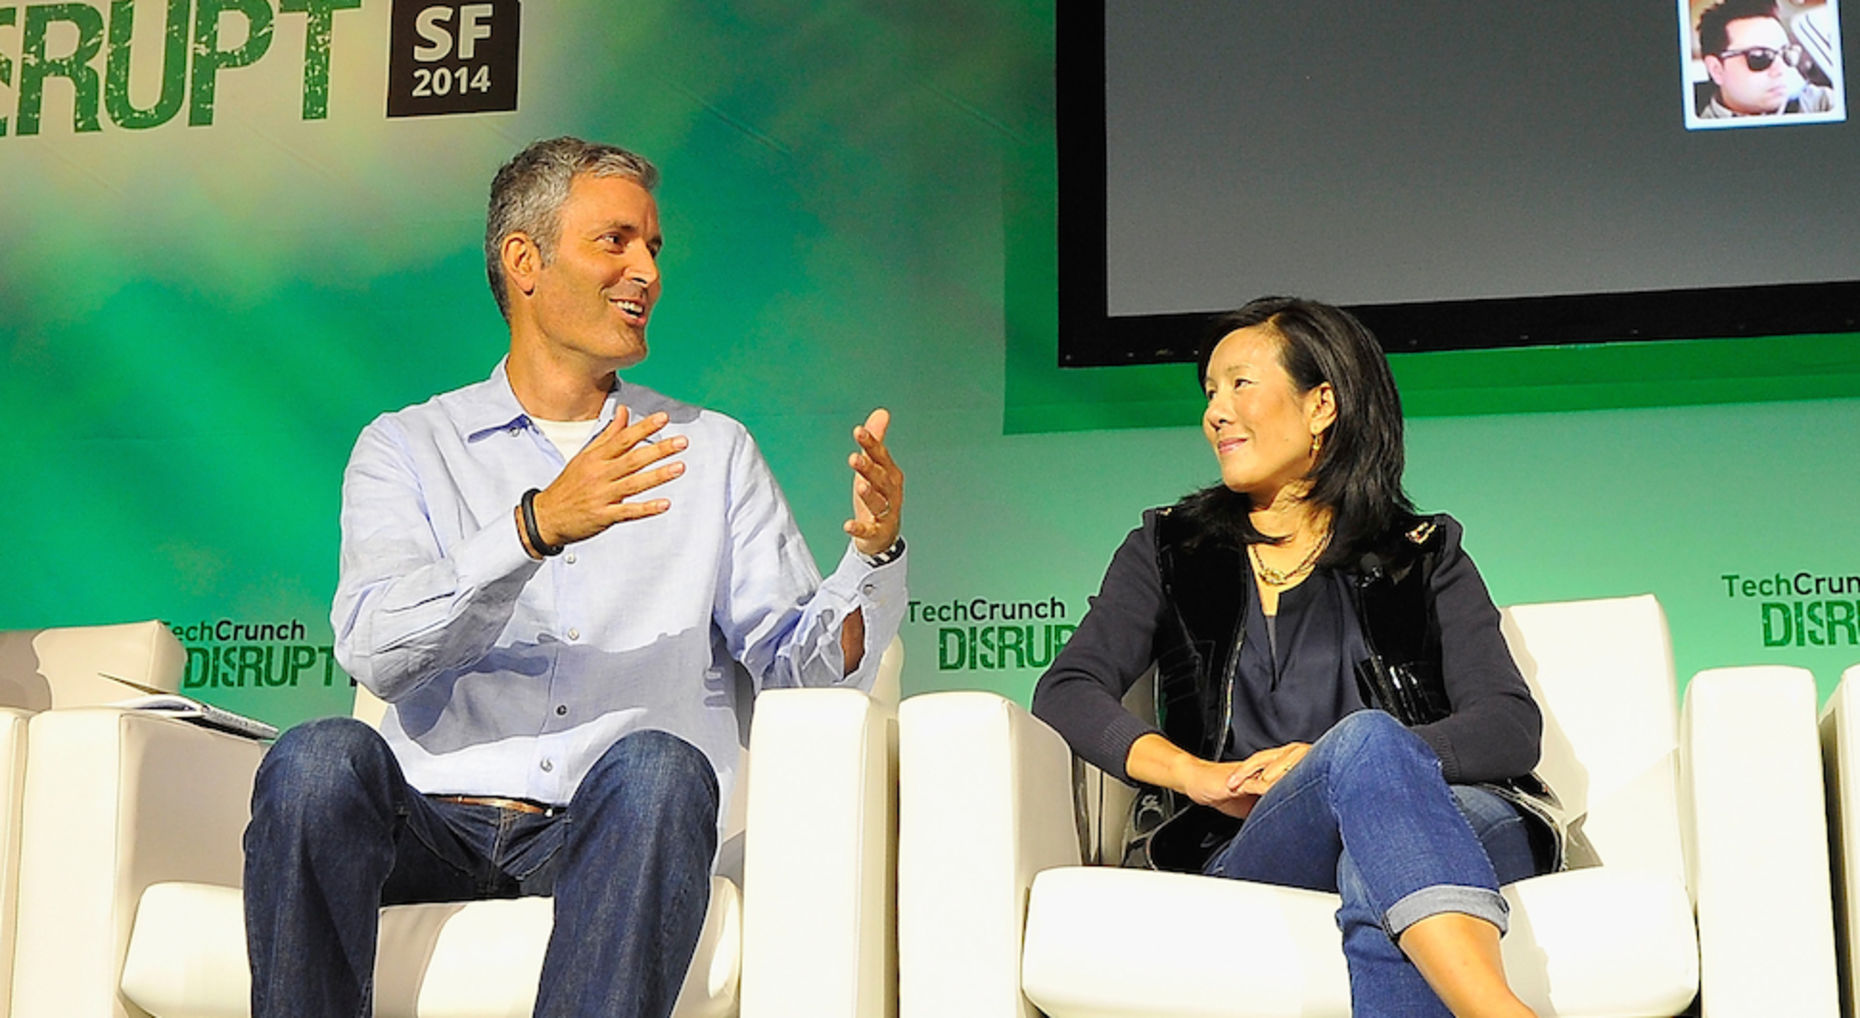 At left, James Slavet of Greylock Partners. Photo by TechCrunch.